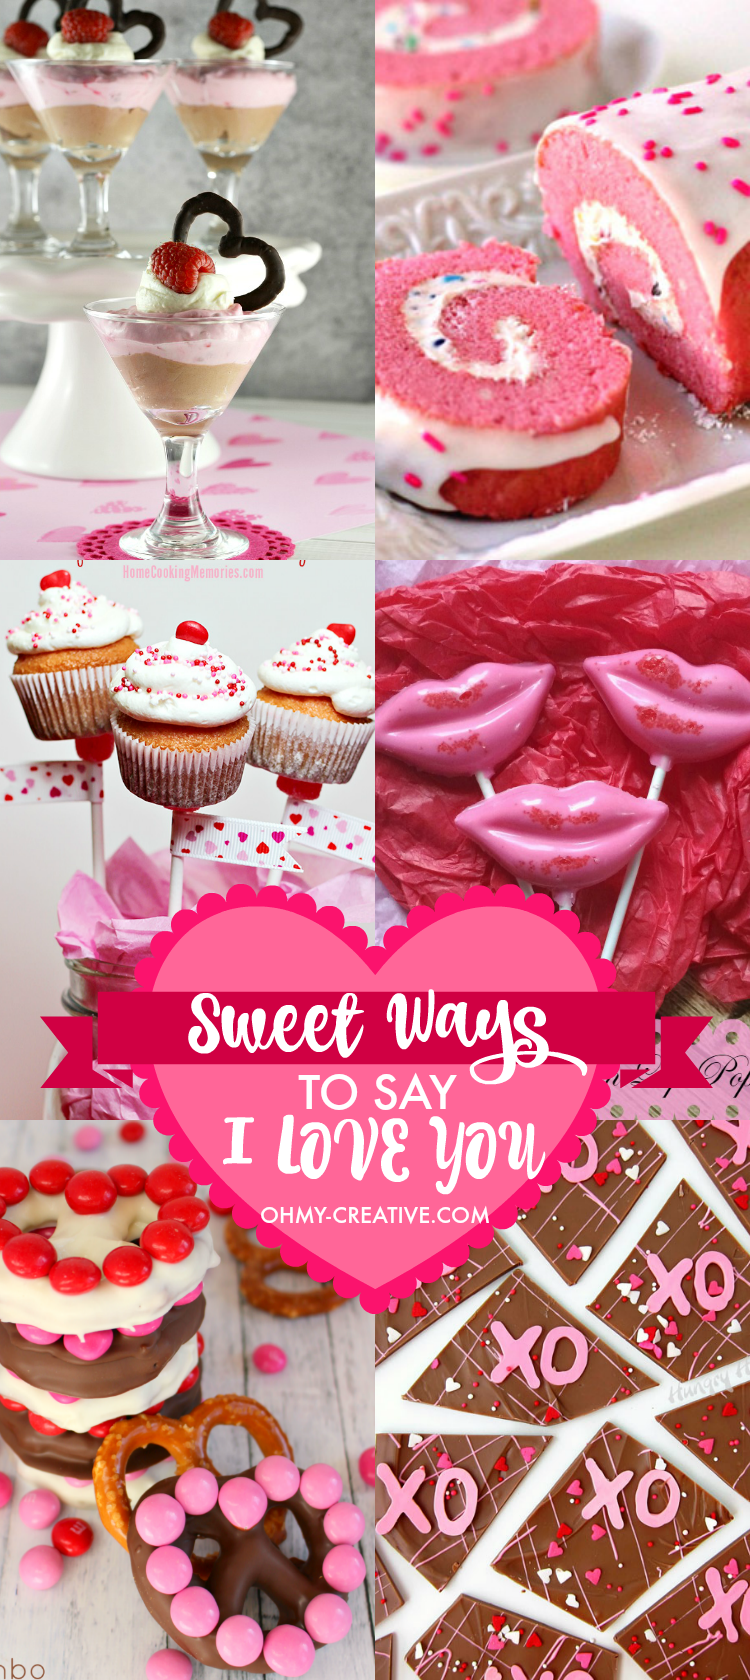 So many ways to show the love to your sweetheart, friends and kids with these Sweet Ways to Say I Love You on Valentine's Day | OHMY-CREATIVE.COM